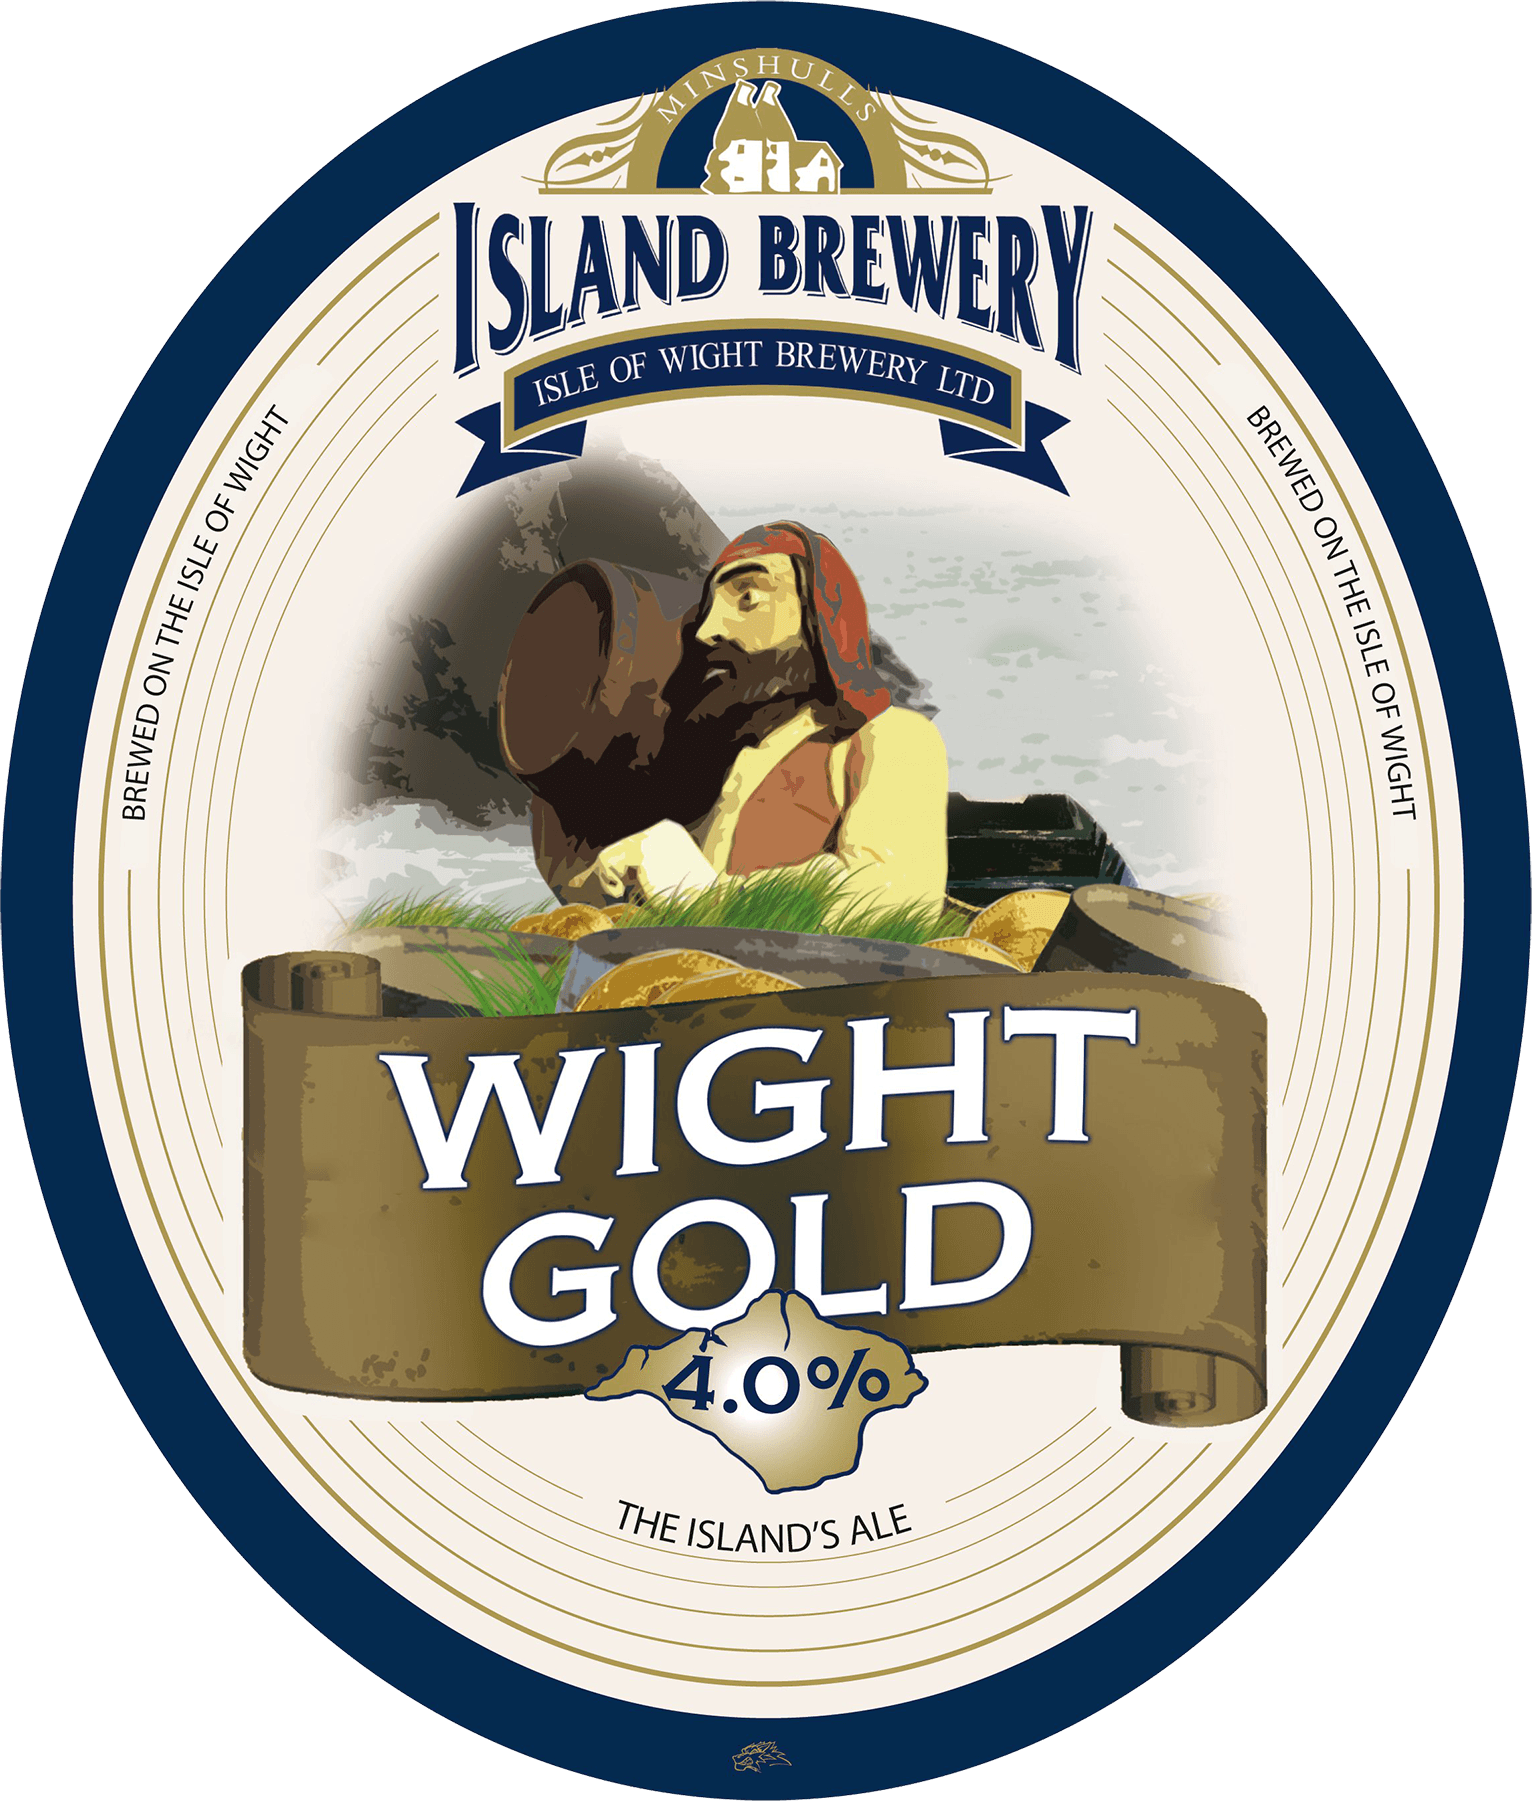 Wight Gold